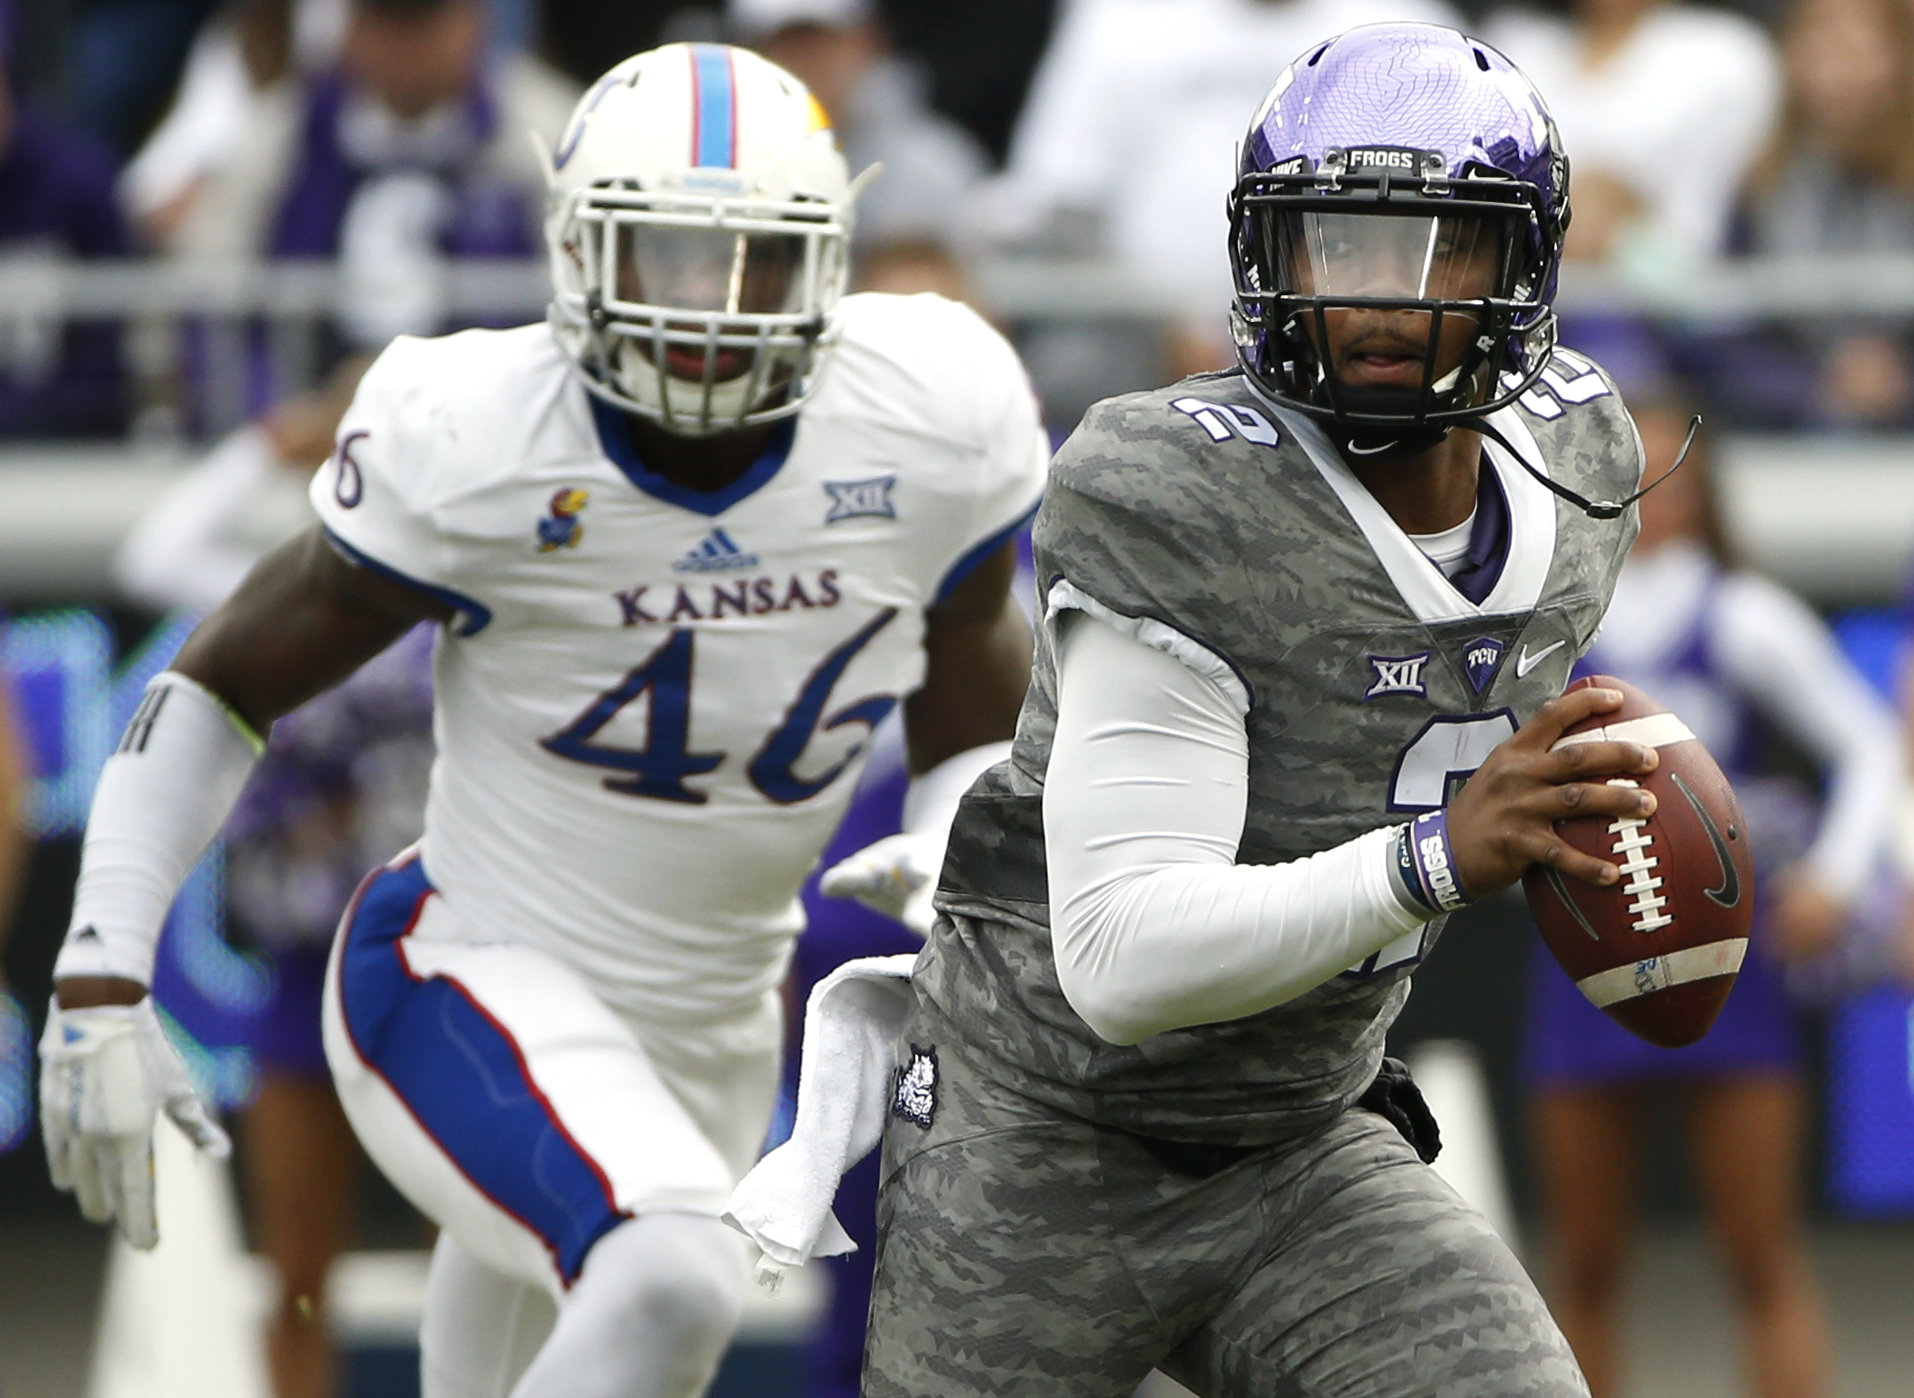 TCU quarterback Trevone Boykin (2) runs against Kansas defensive end Dorance Armstrong Jr. (46) in the first quarter of an NCAA college football game Saturday, Nov. 14, 2015, in Fort Worth, Texas. (AP Photo/Ron Jenkins)